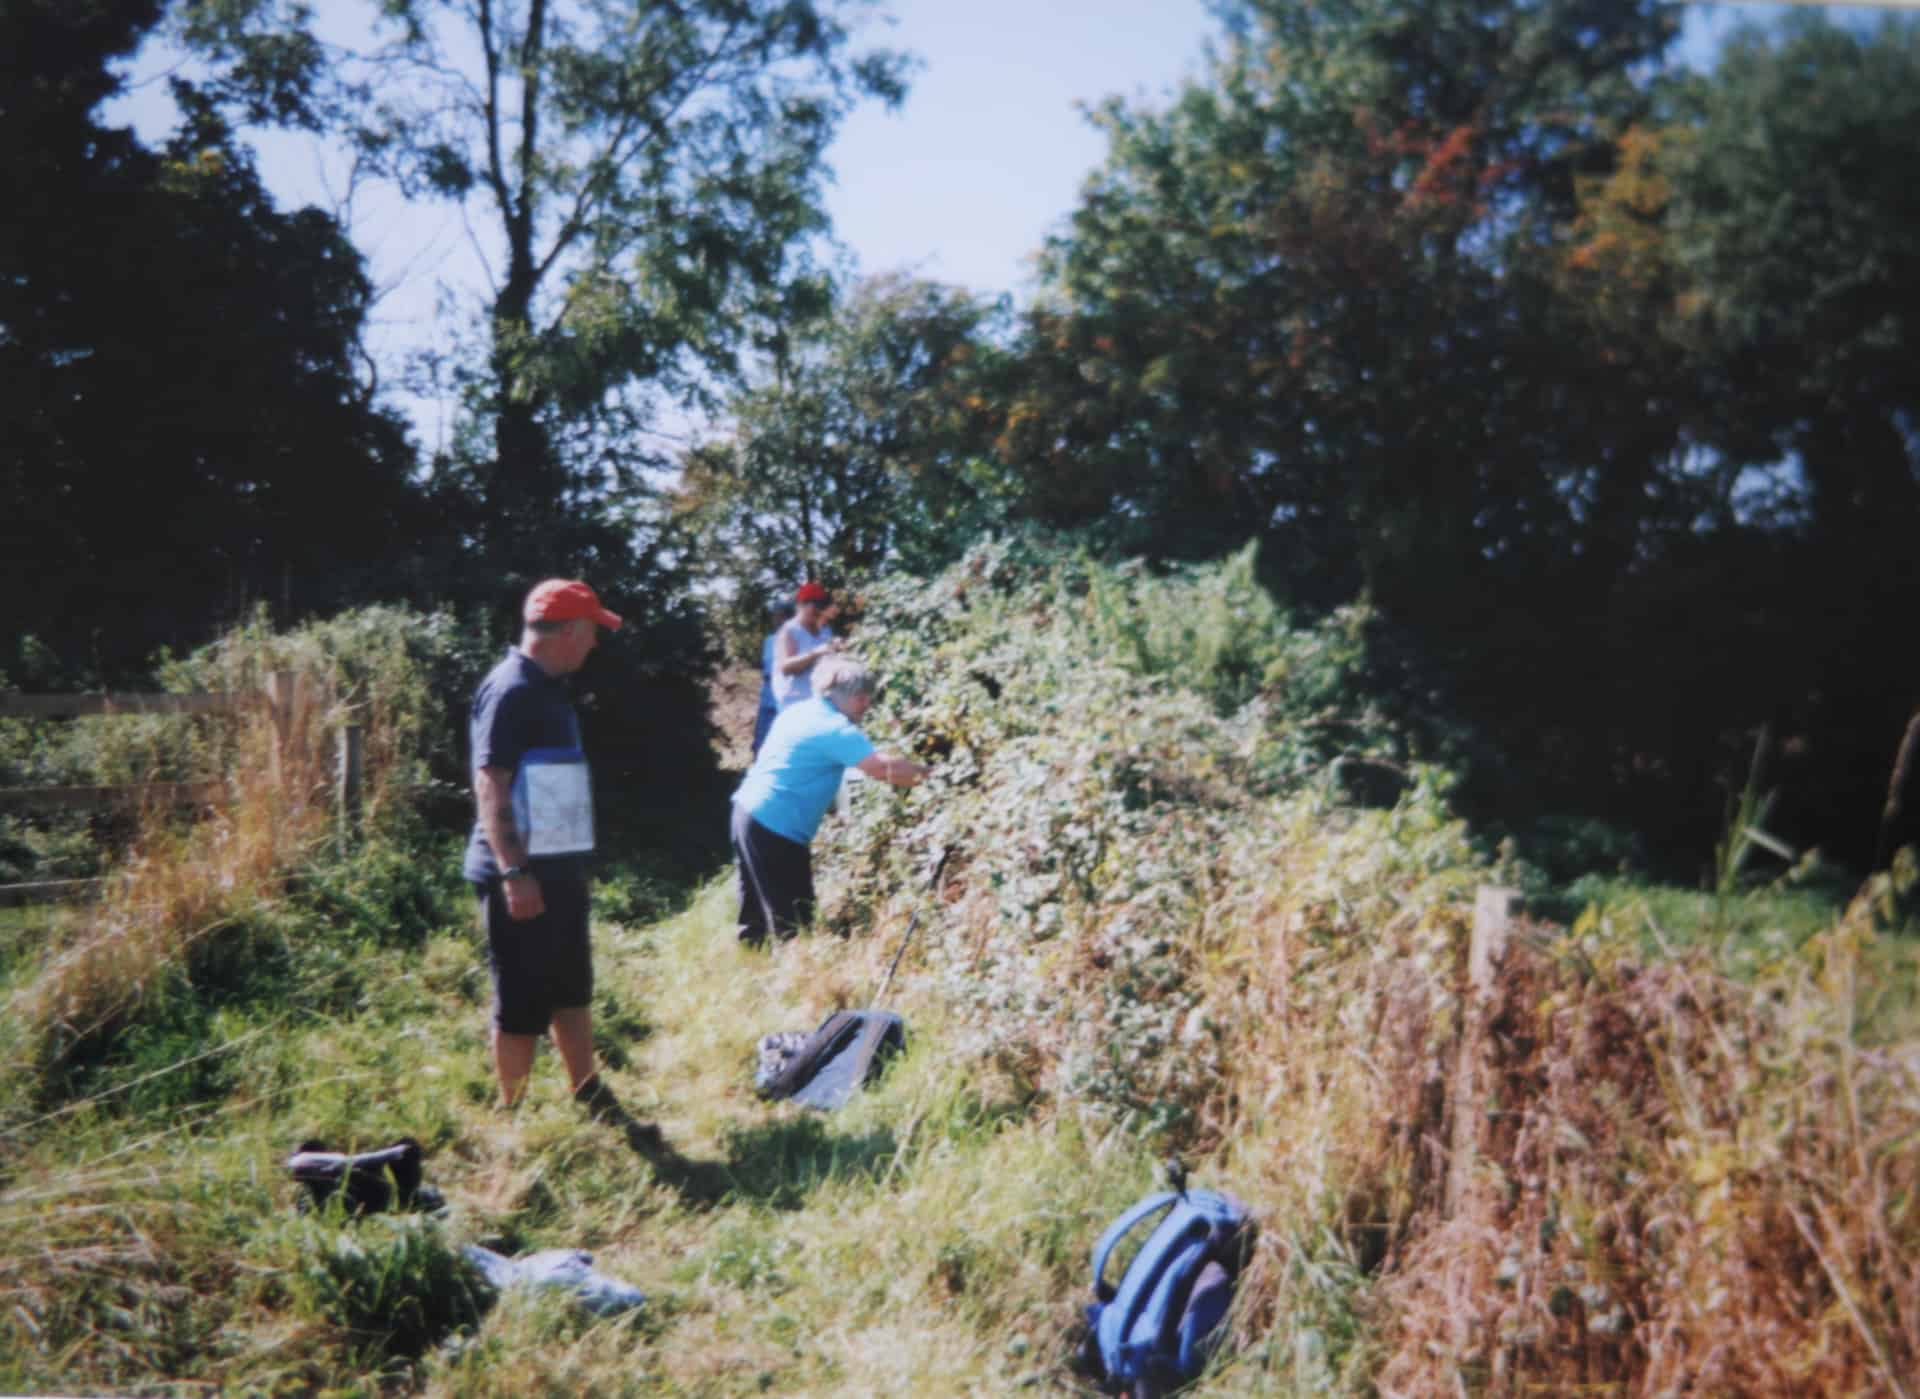 Members of 'Sandnats' - Sandwell Naturalists - undertaking Conservation work